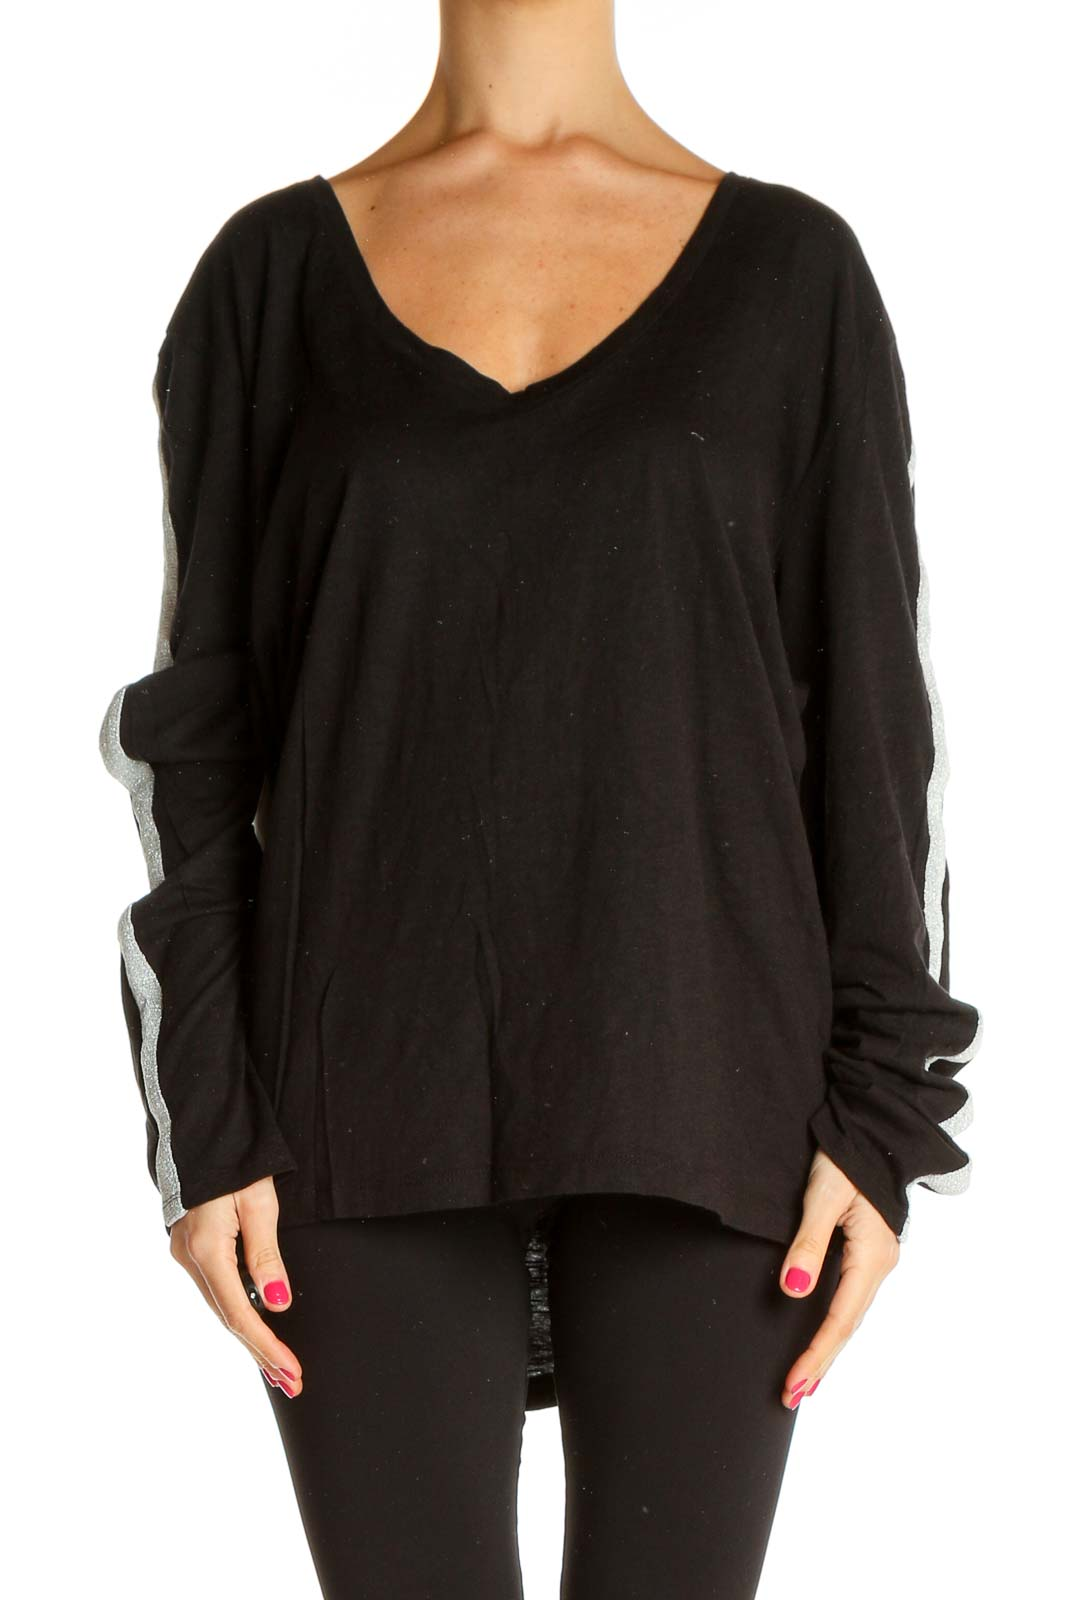 Black Solid All Day Wear Sweater Front